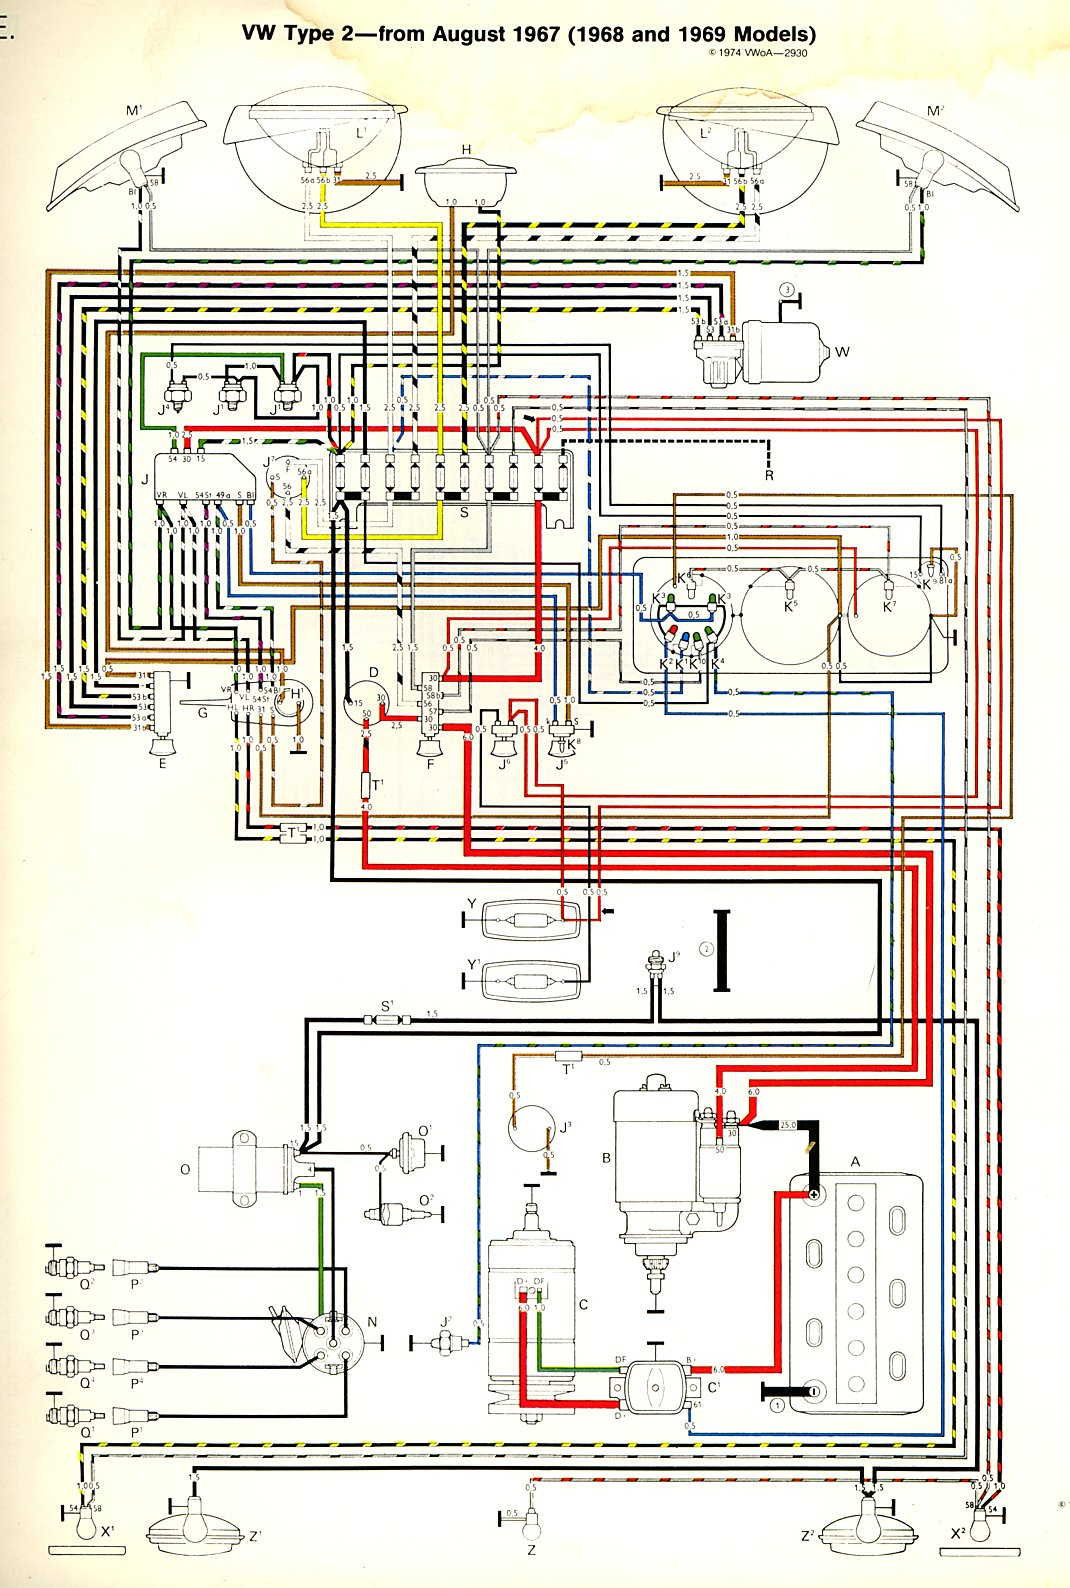 baybus_6869a 1968 69 bus wiring diagram thegoldenbug com 74 vw bus wiring diagram at nearapp.co